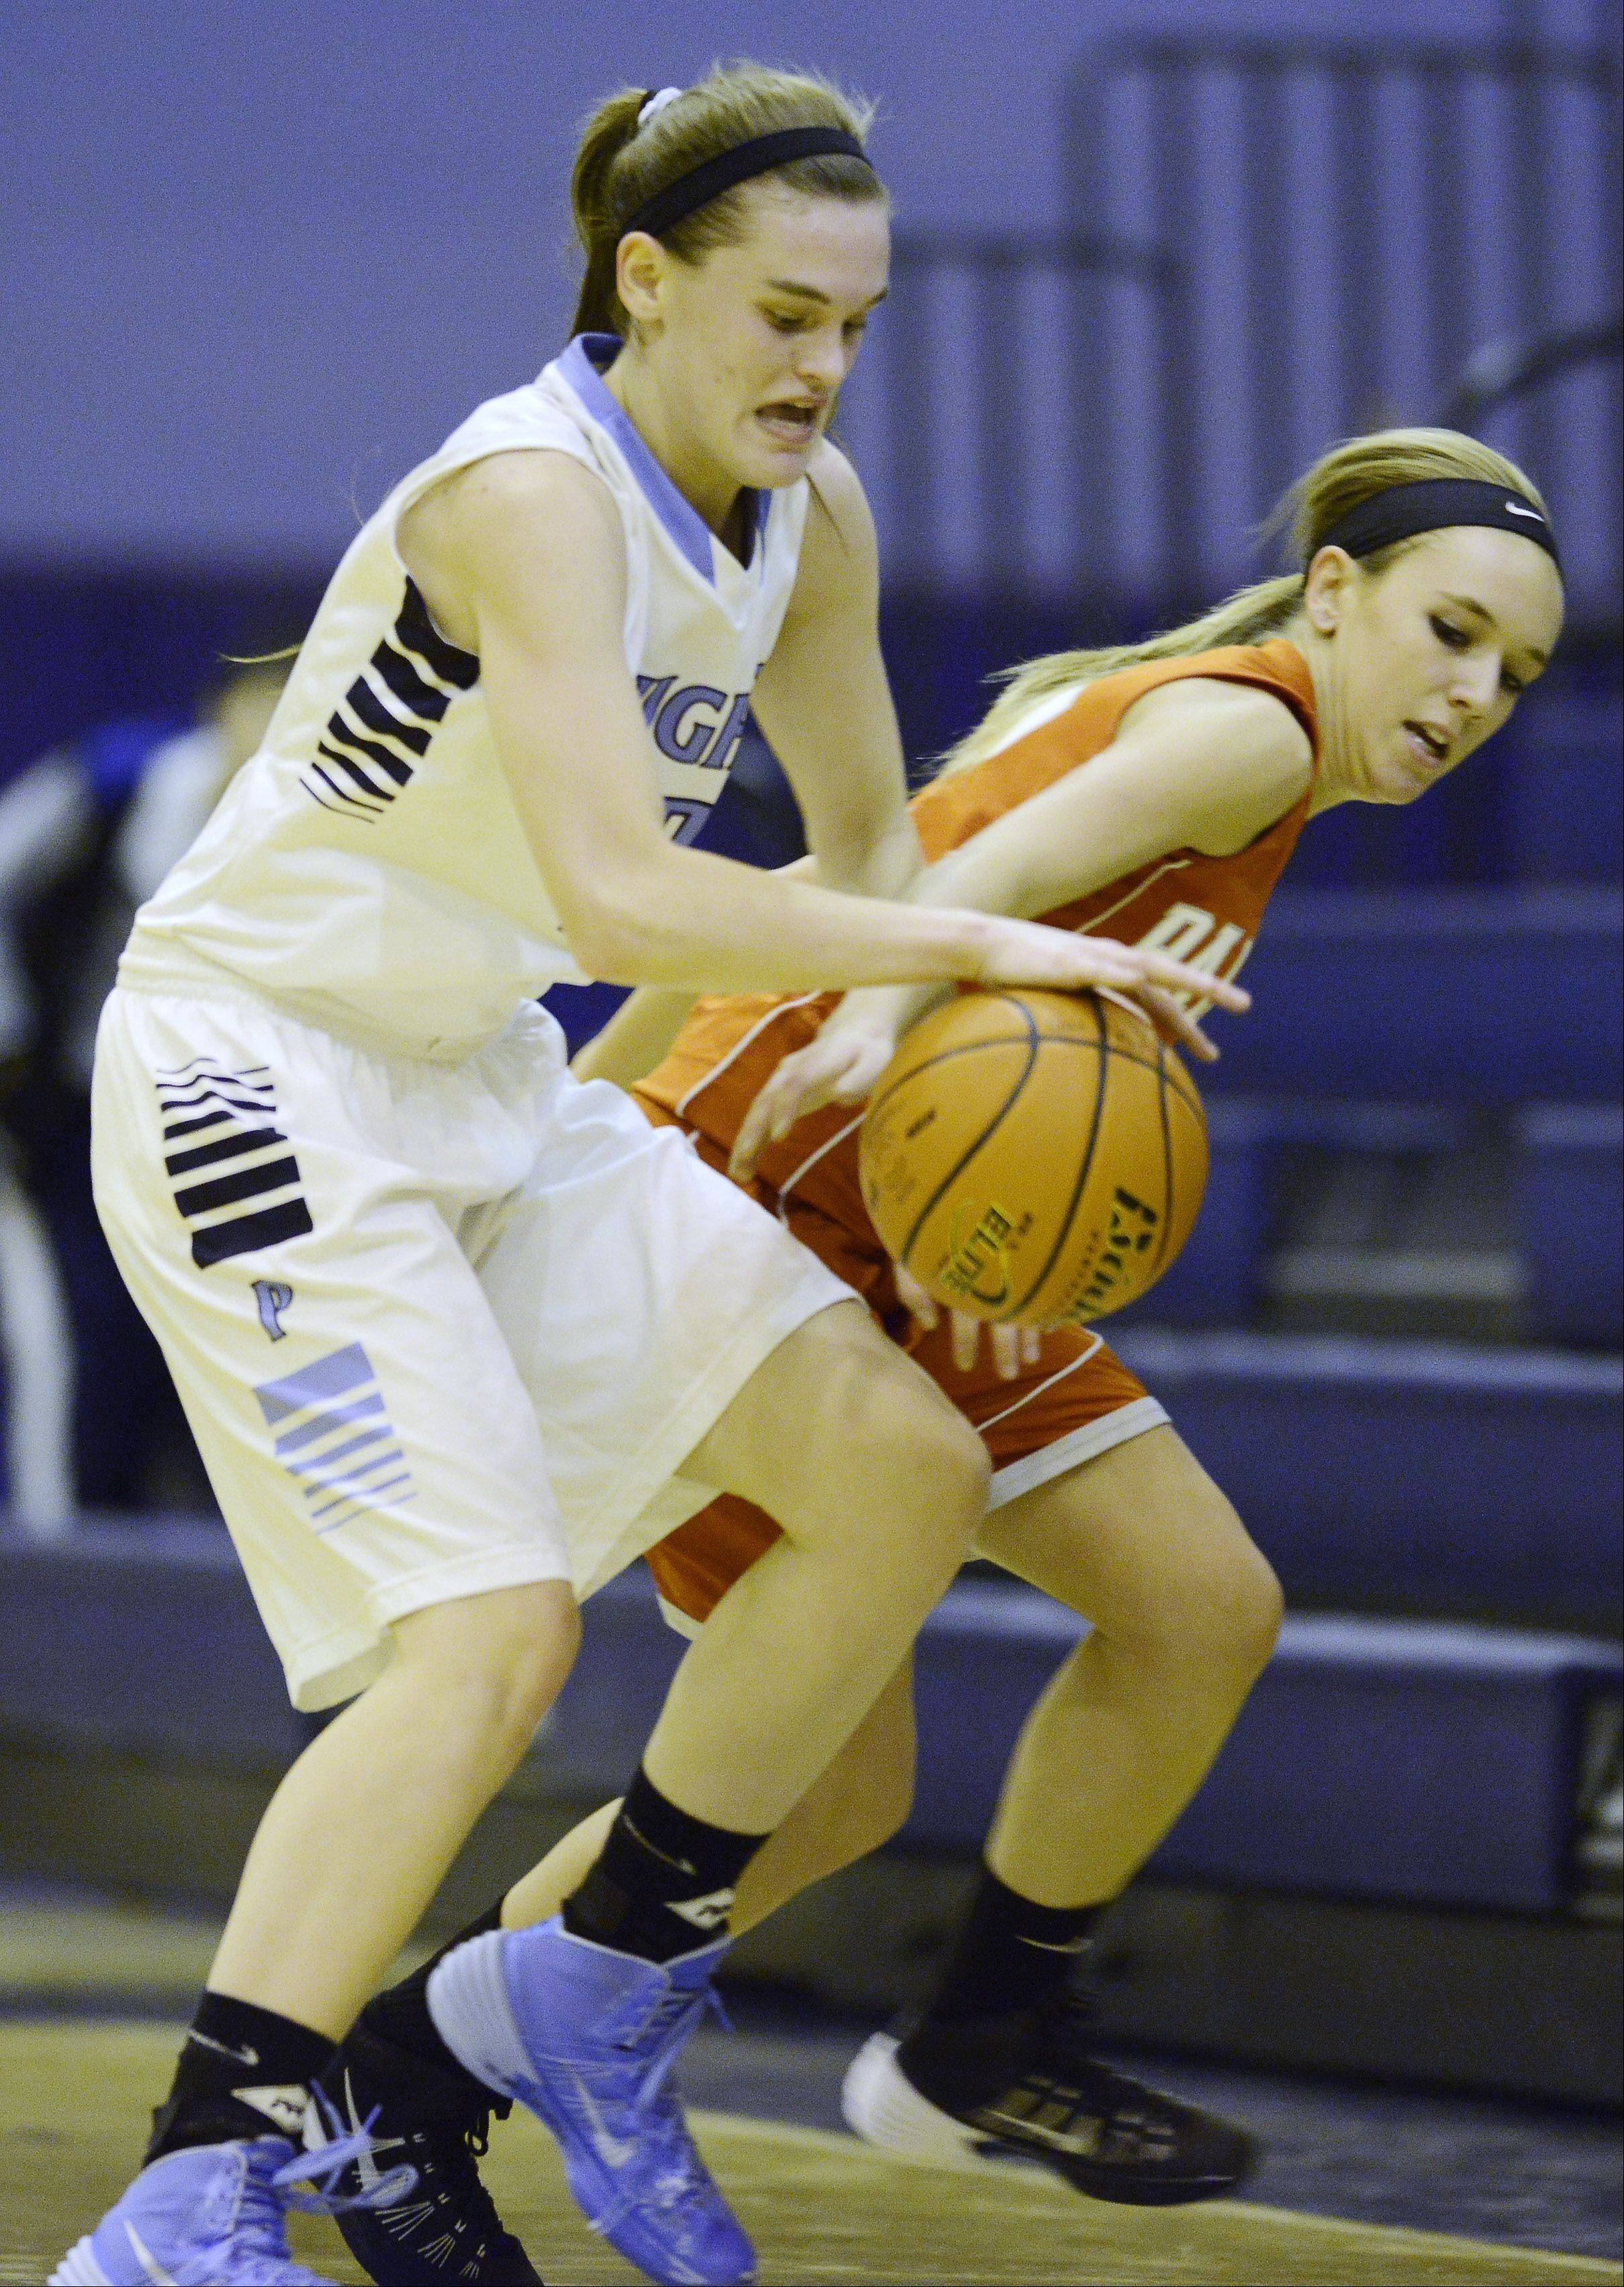 Prospect's Taylor Will, left, beats Palatine's Kristen Allen to a loose ball during Tuesday's game.